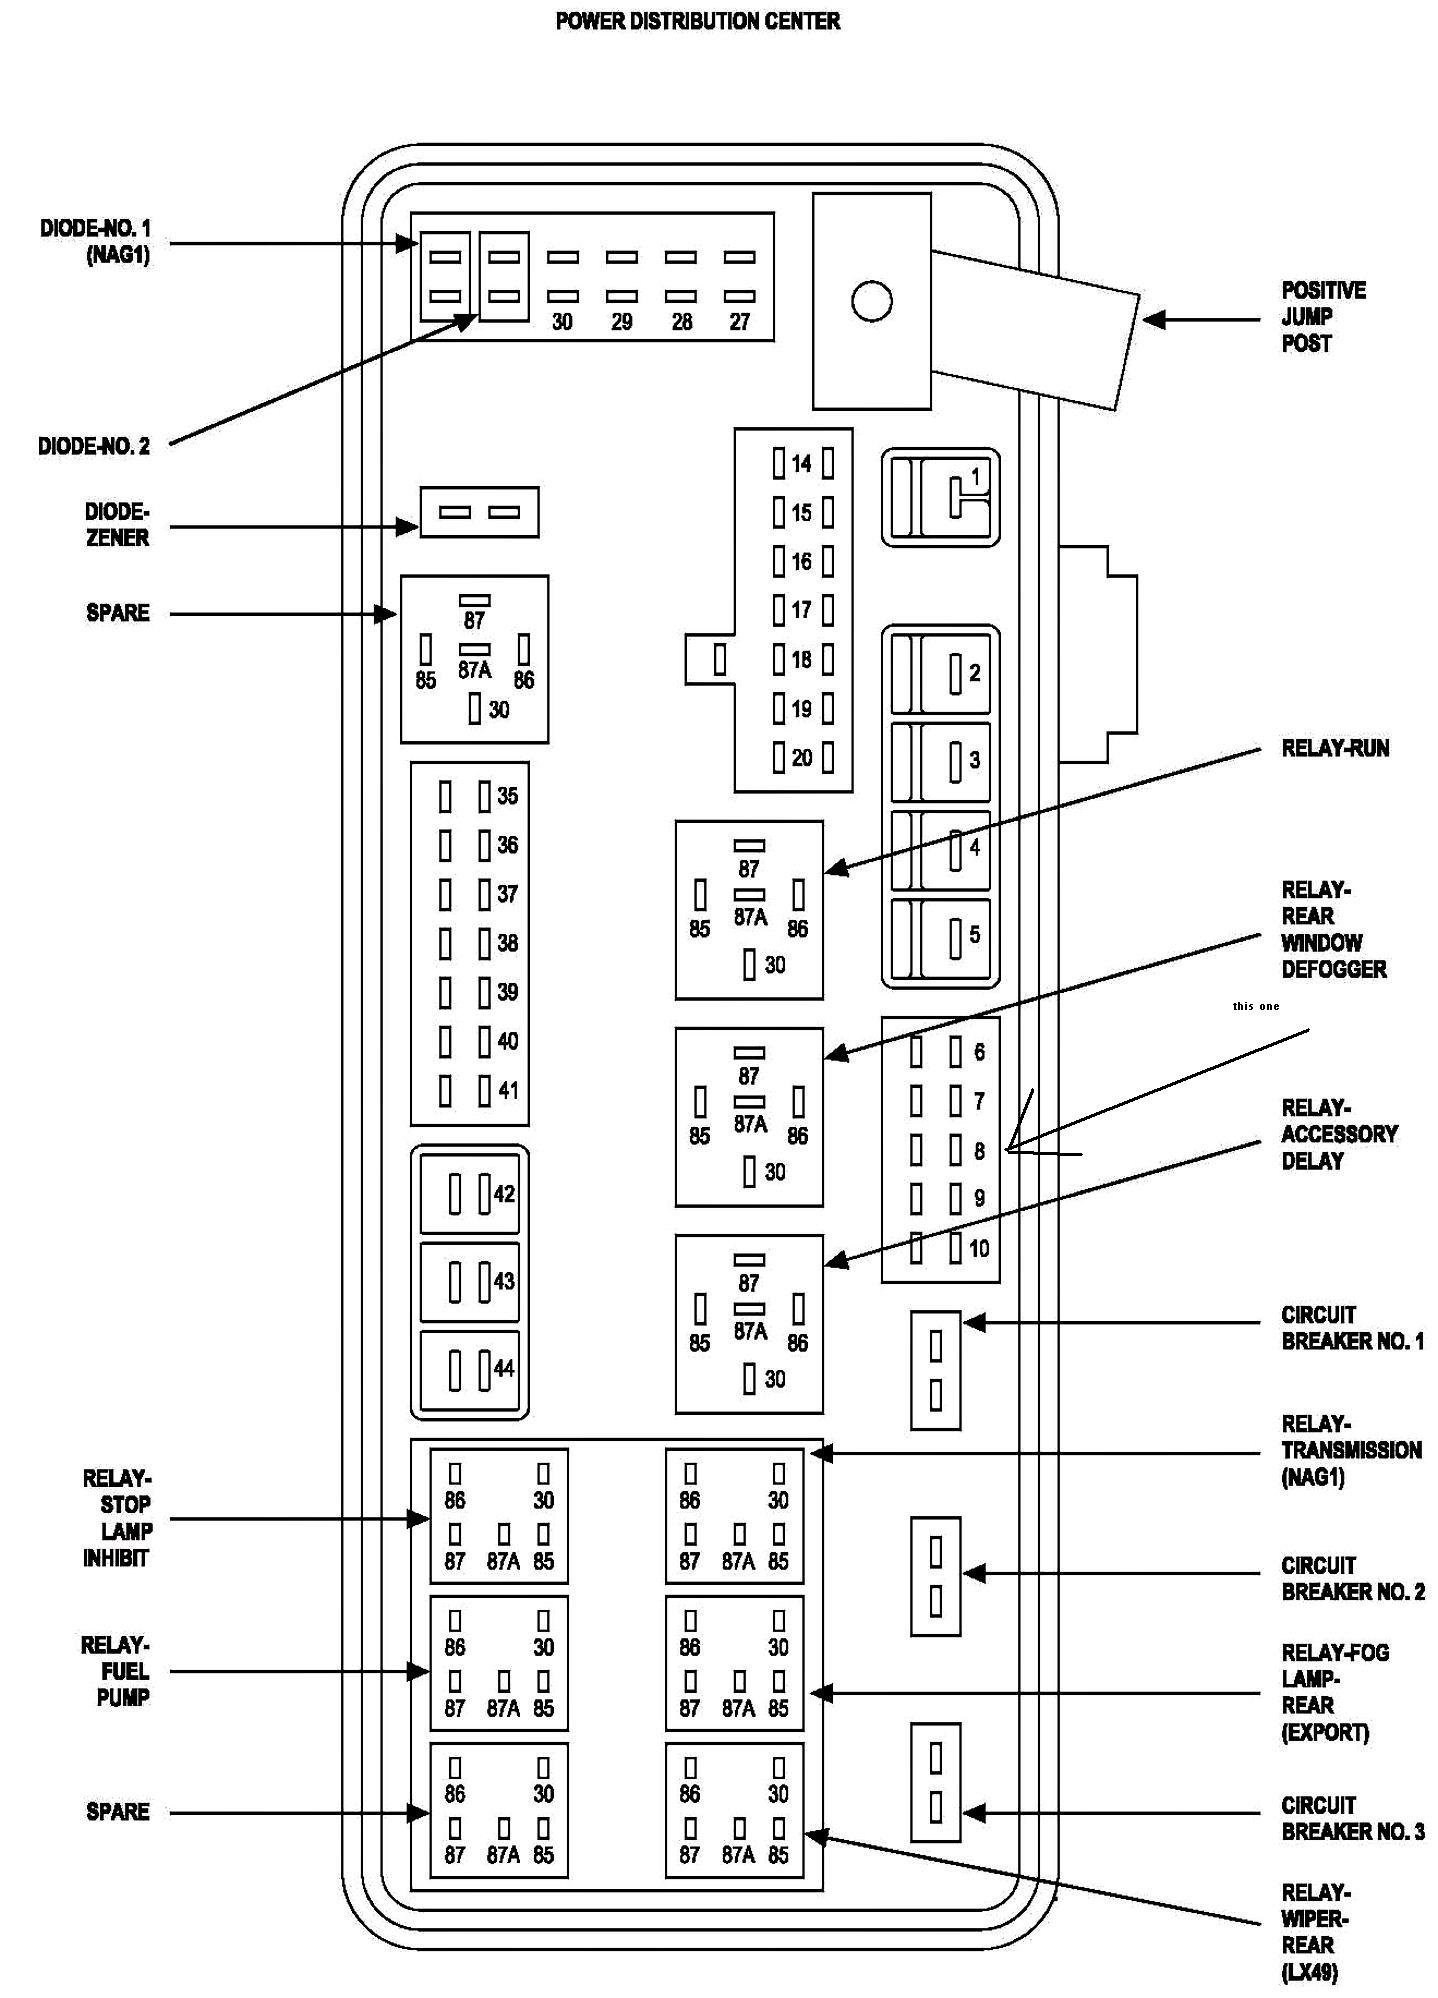 Astounding 1989 Dodge Ram Fuse Box Wiring Diagram Wiring Cloud Hemtshollocom